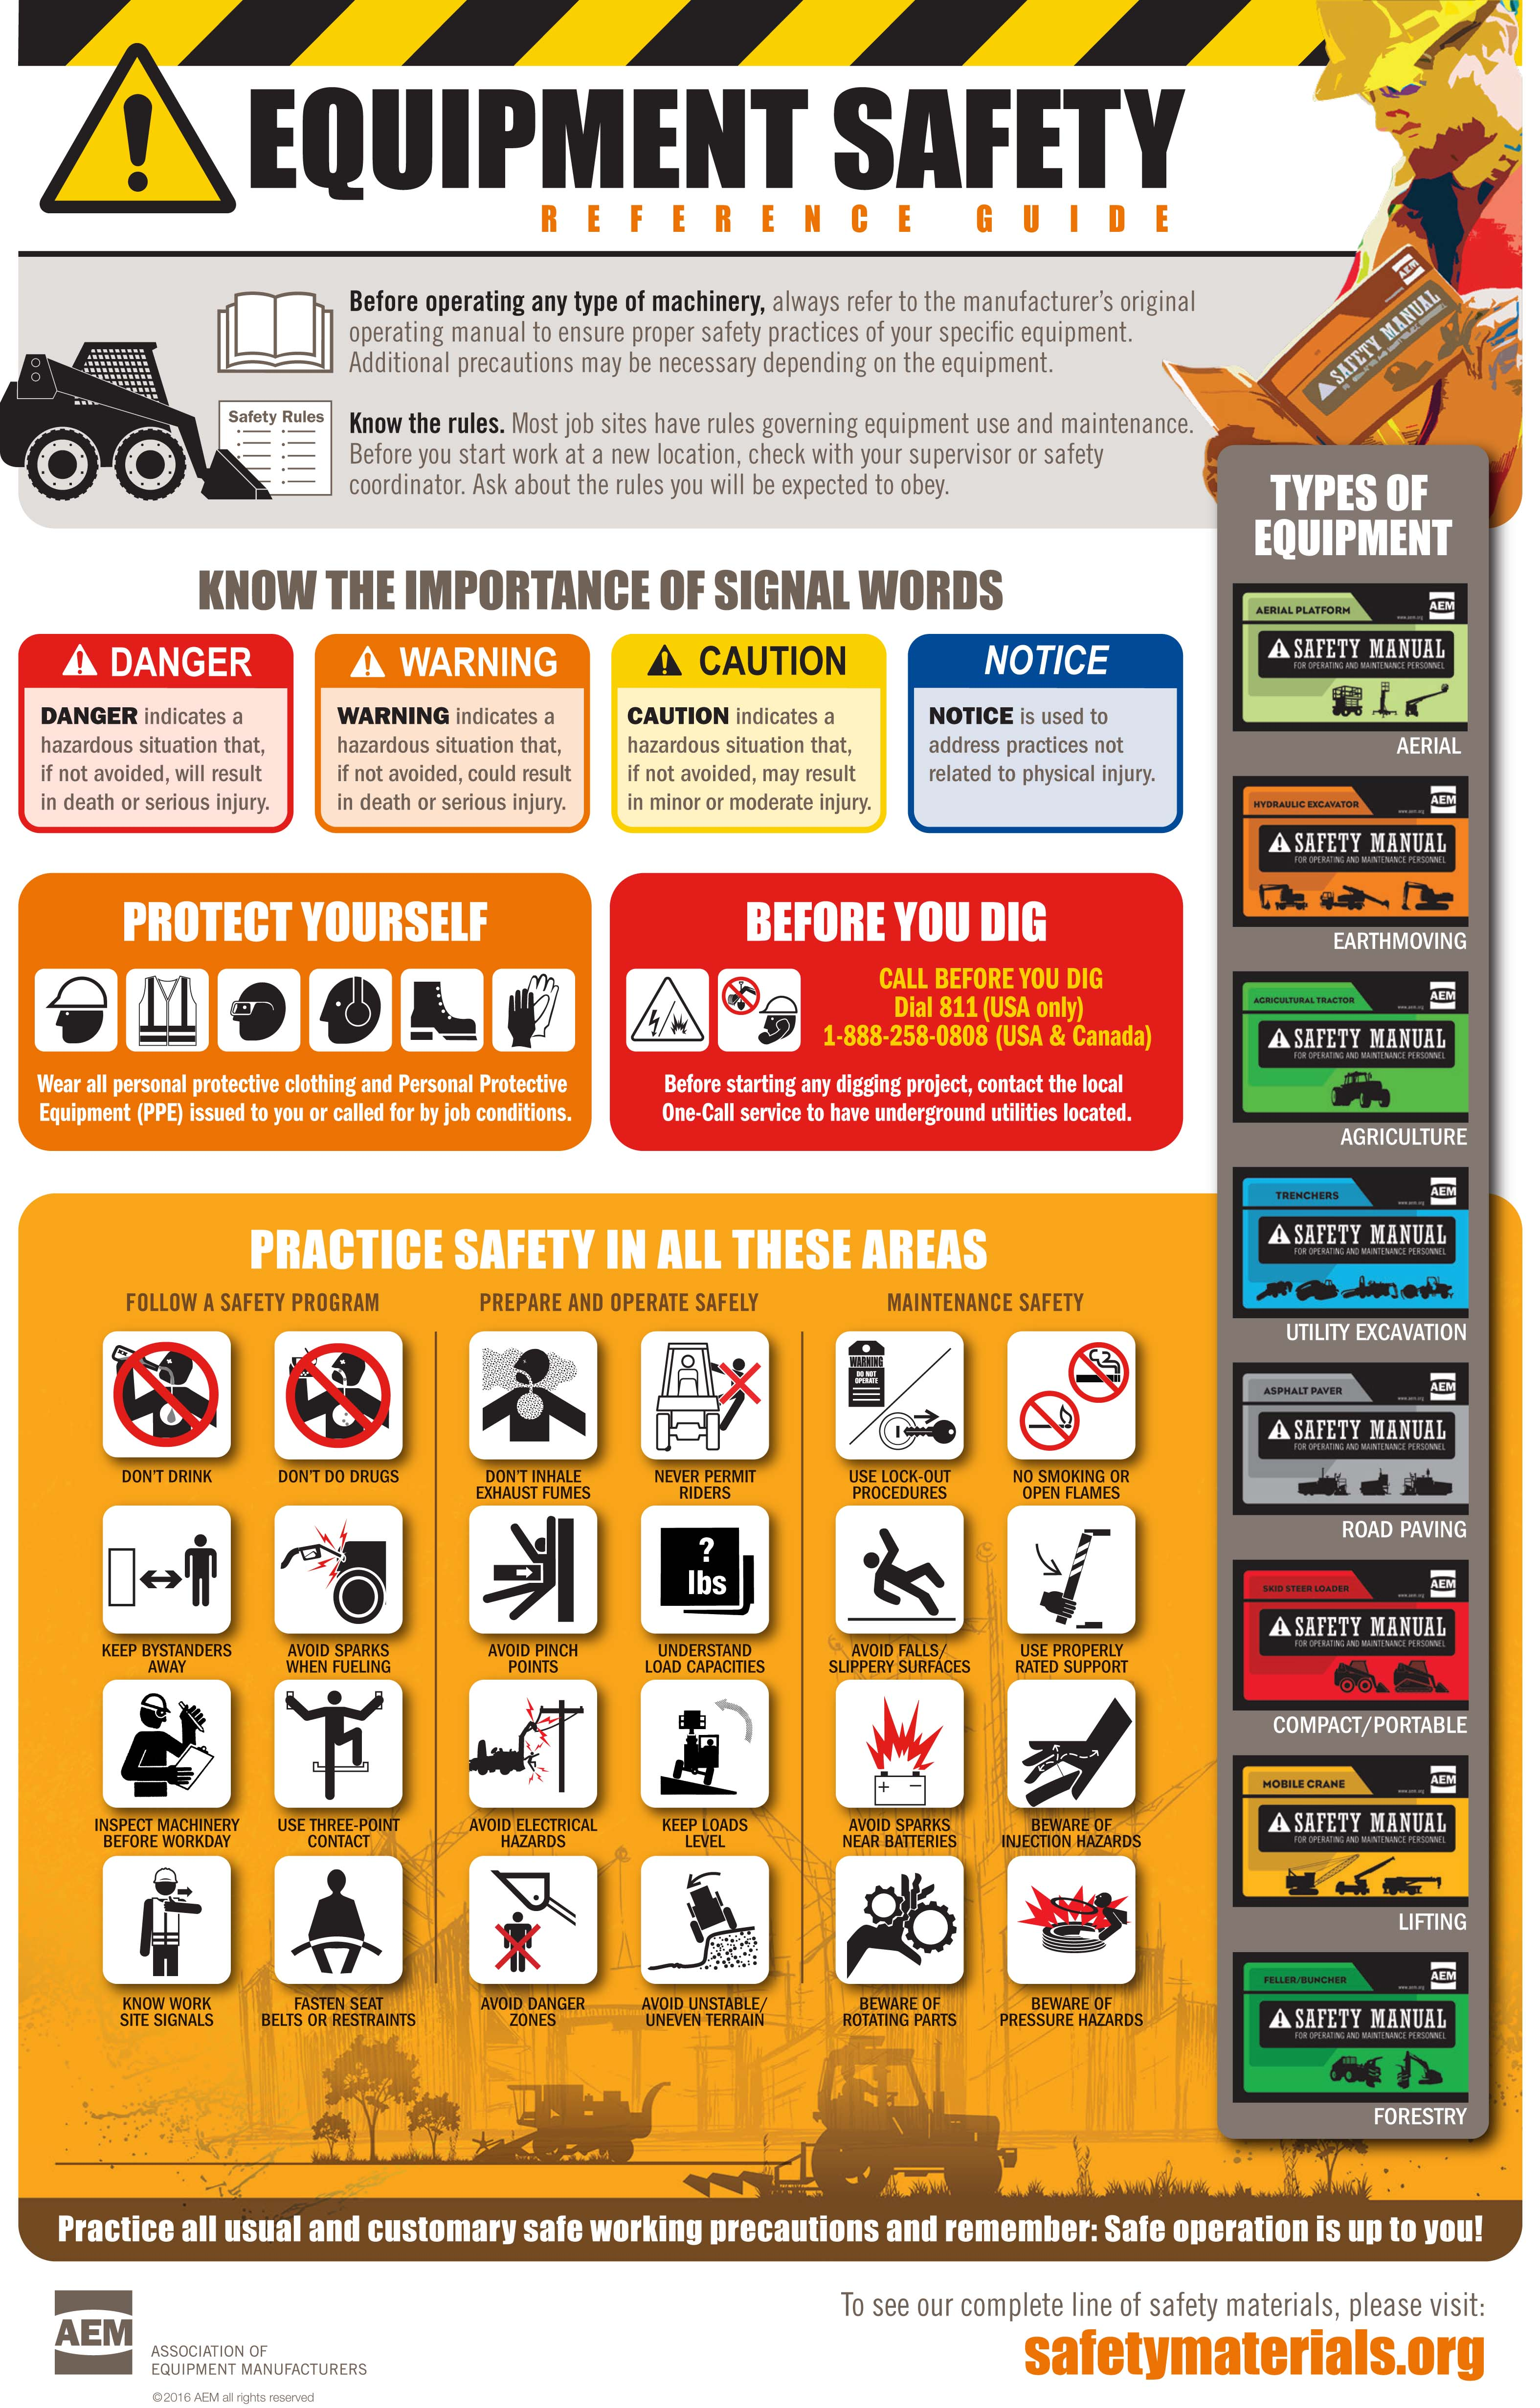 The AEM's Equipment Safety Infographic